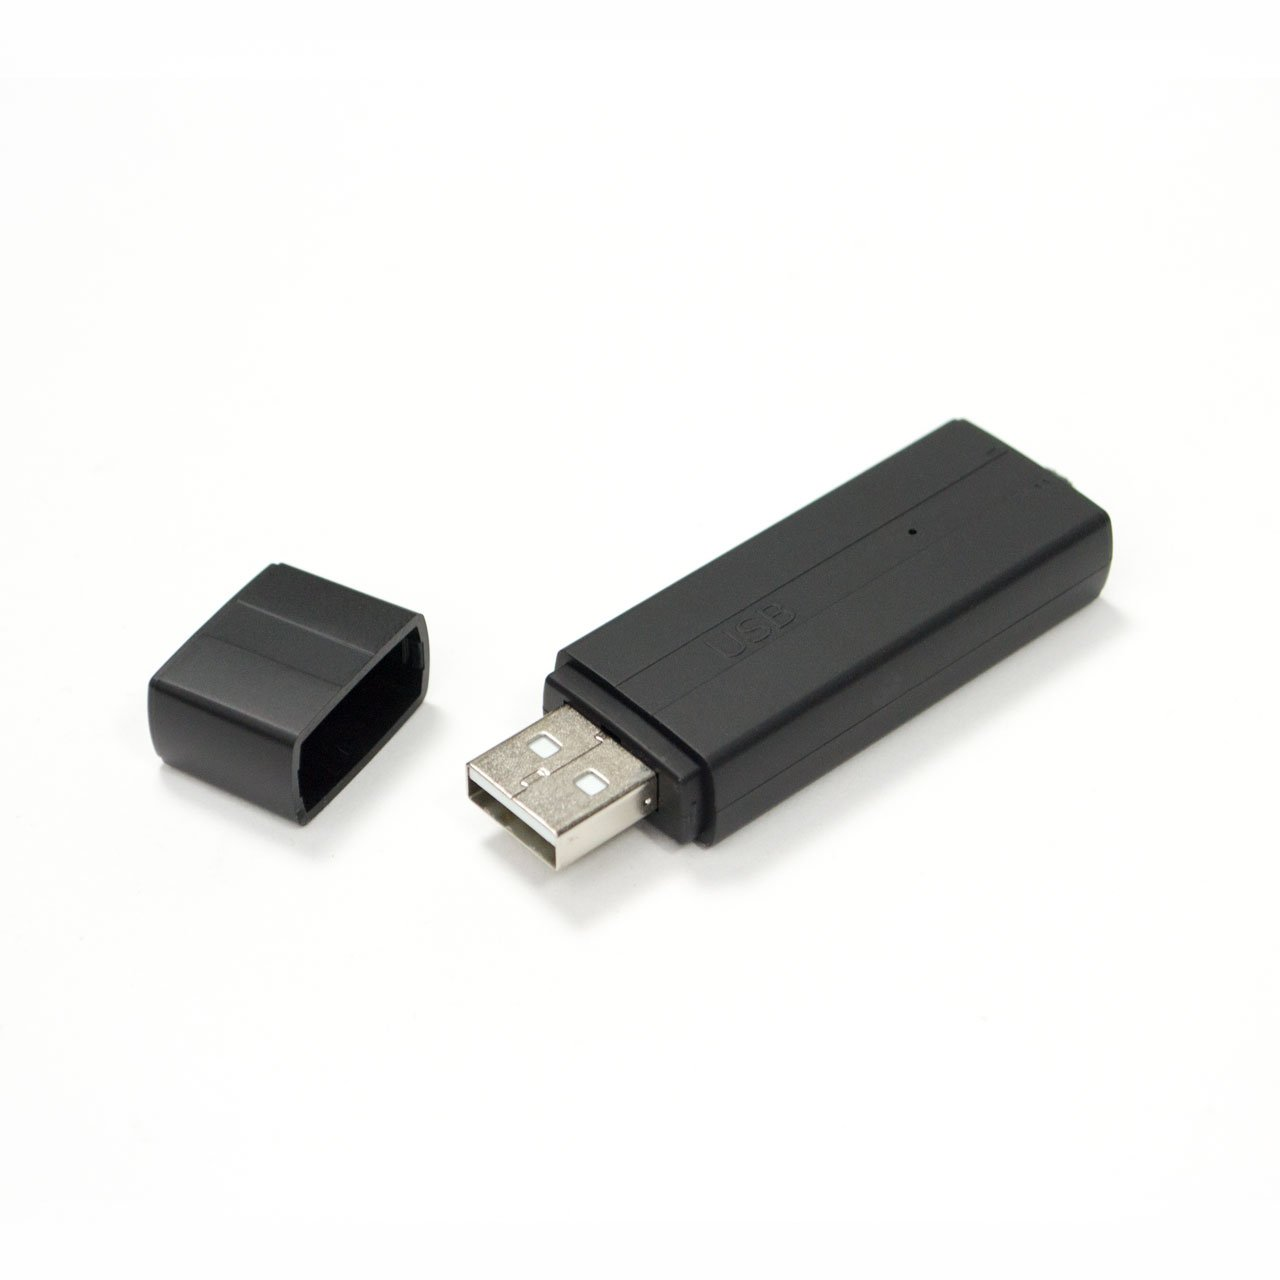 usb stick audiorecorder mit zeit und datumsstempel mit 25. Black Bedroom Furniture Sets. Home Design Ideas